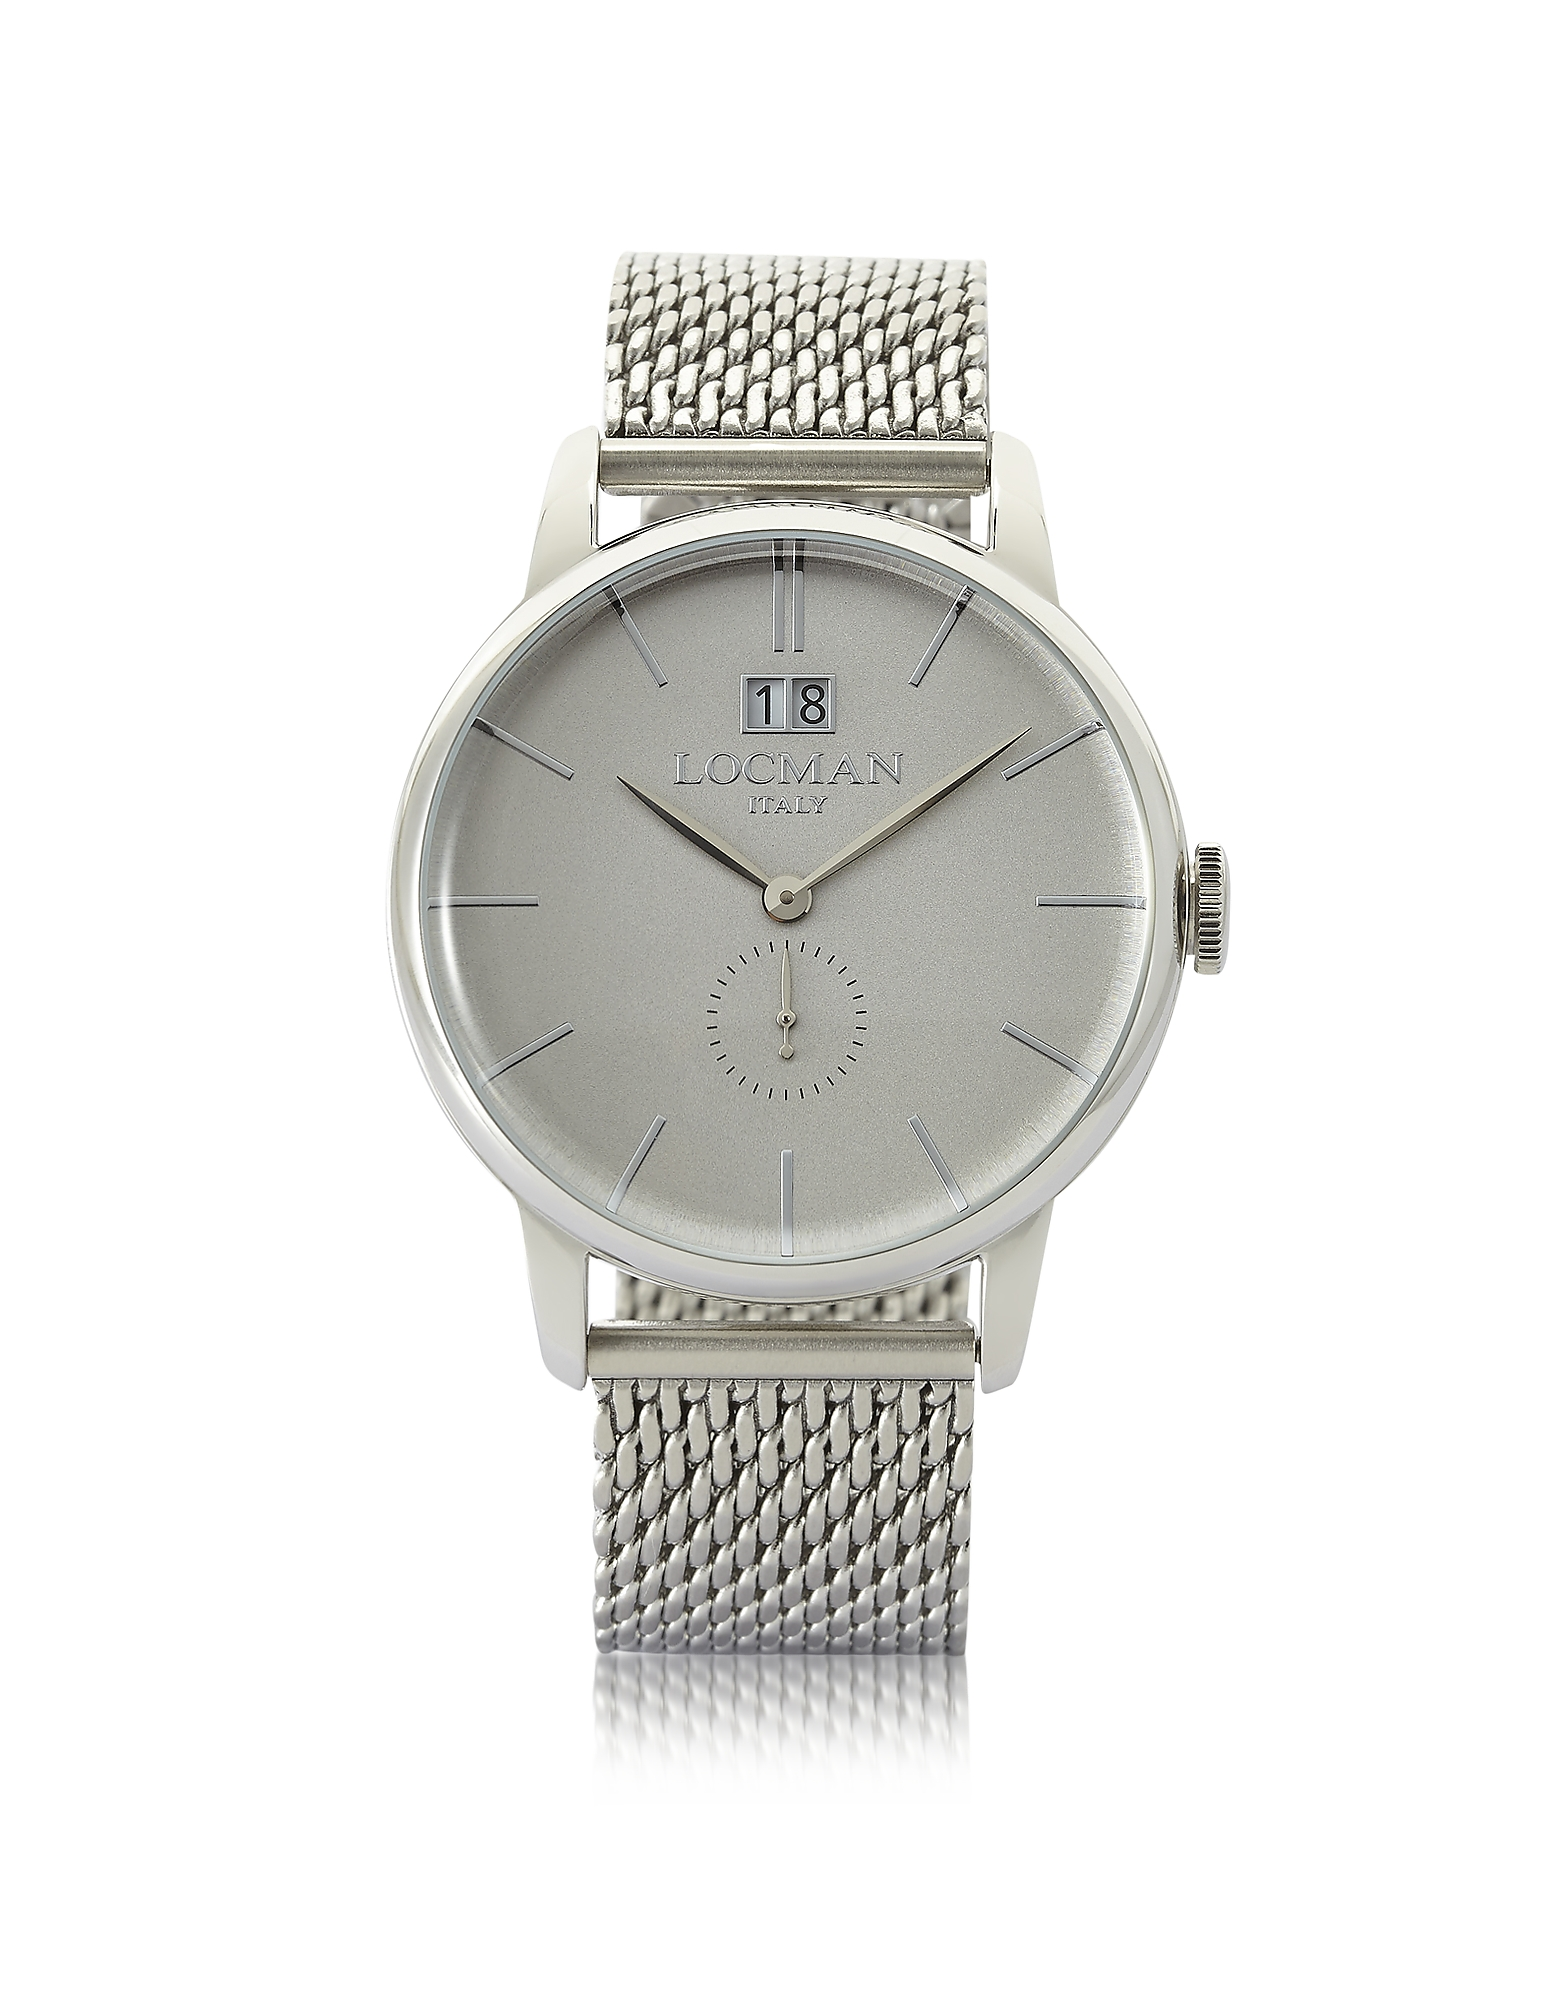 Locman Men's Watches, 1960 Silver Stainless Steel Men's Watch